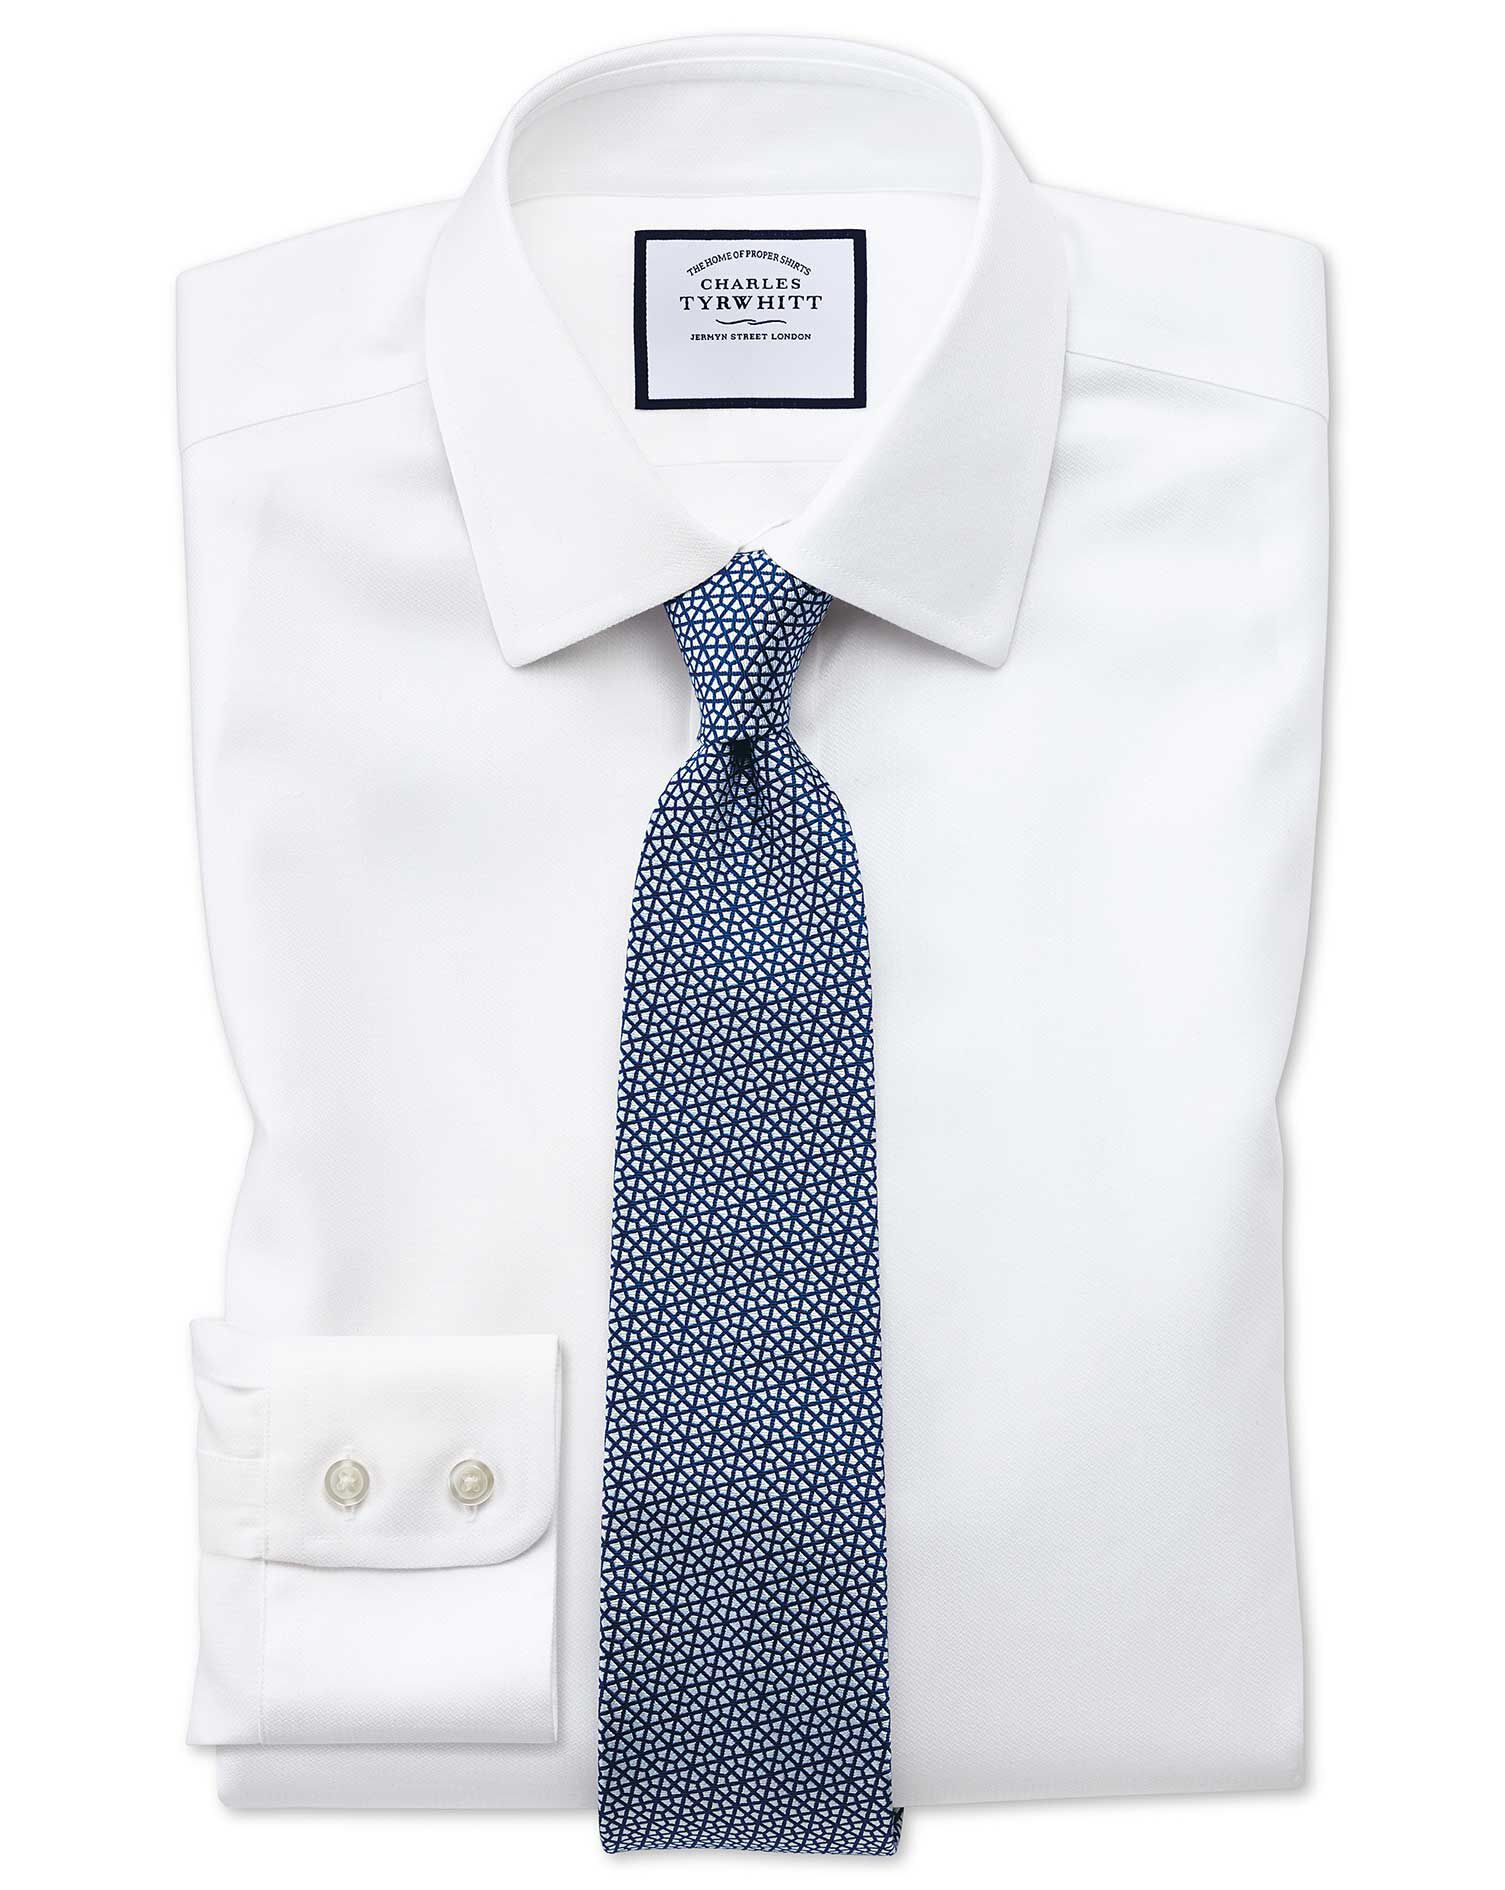 Extra Slim Fit Non-Iron Step Weave White Cotton Formal Shirt Double Cuff Size 17/36 by Charles Tyrwh